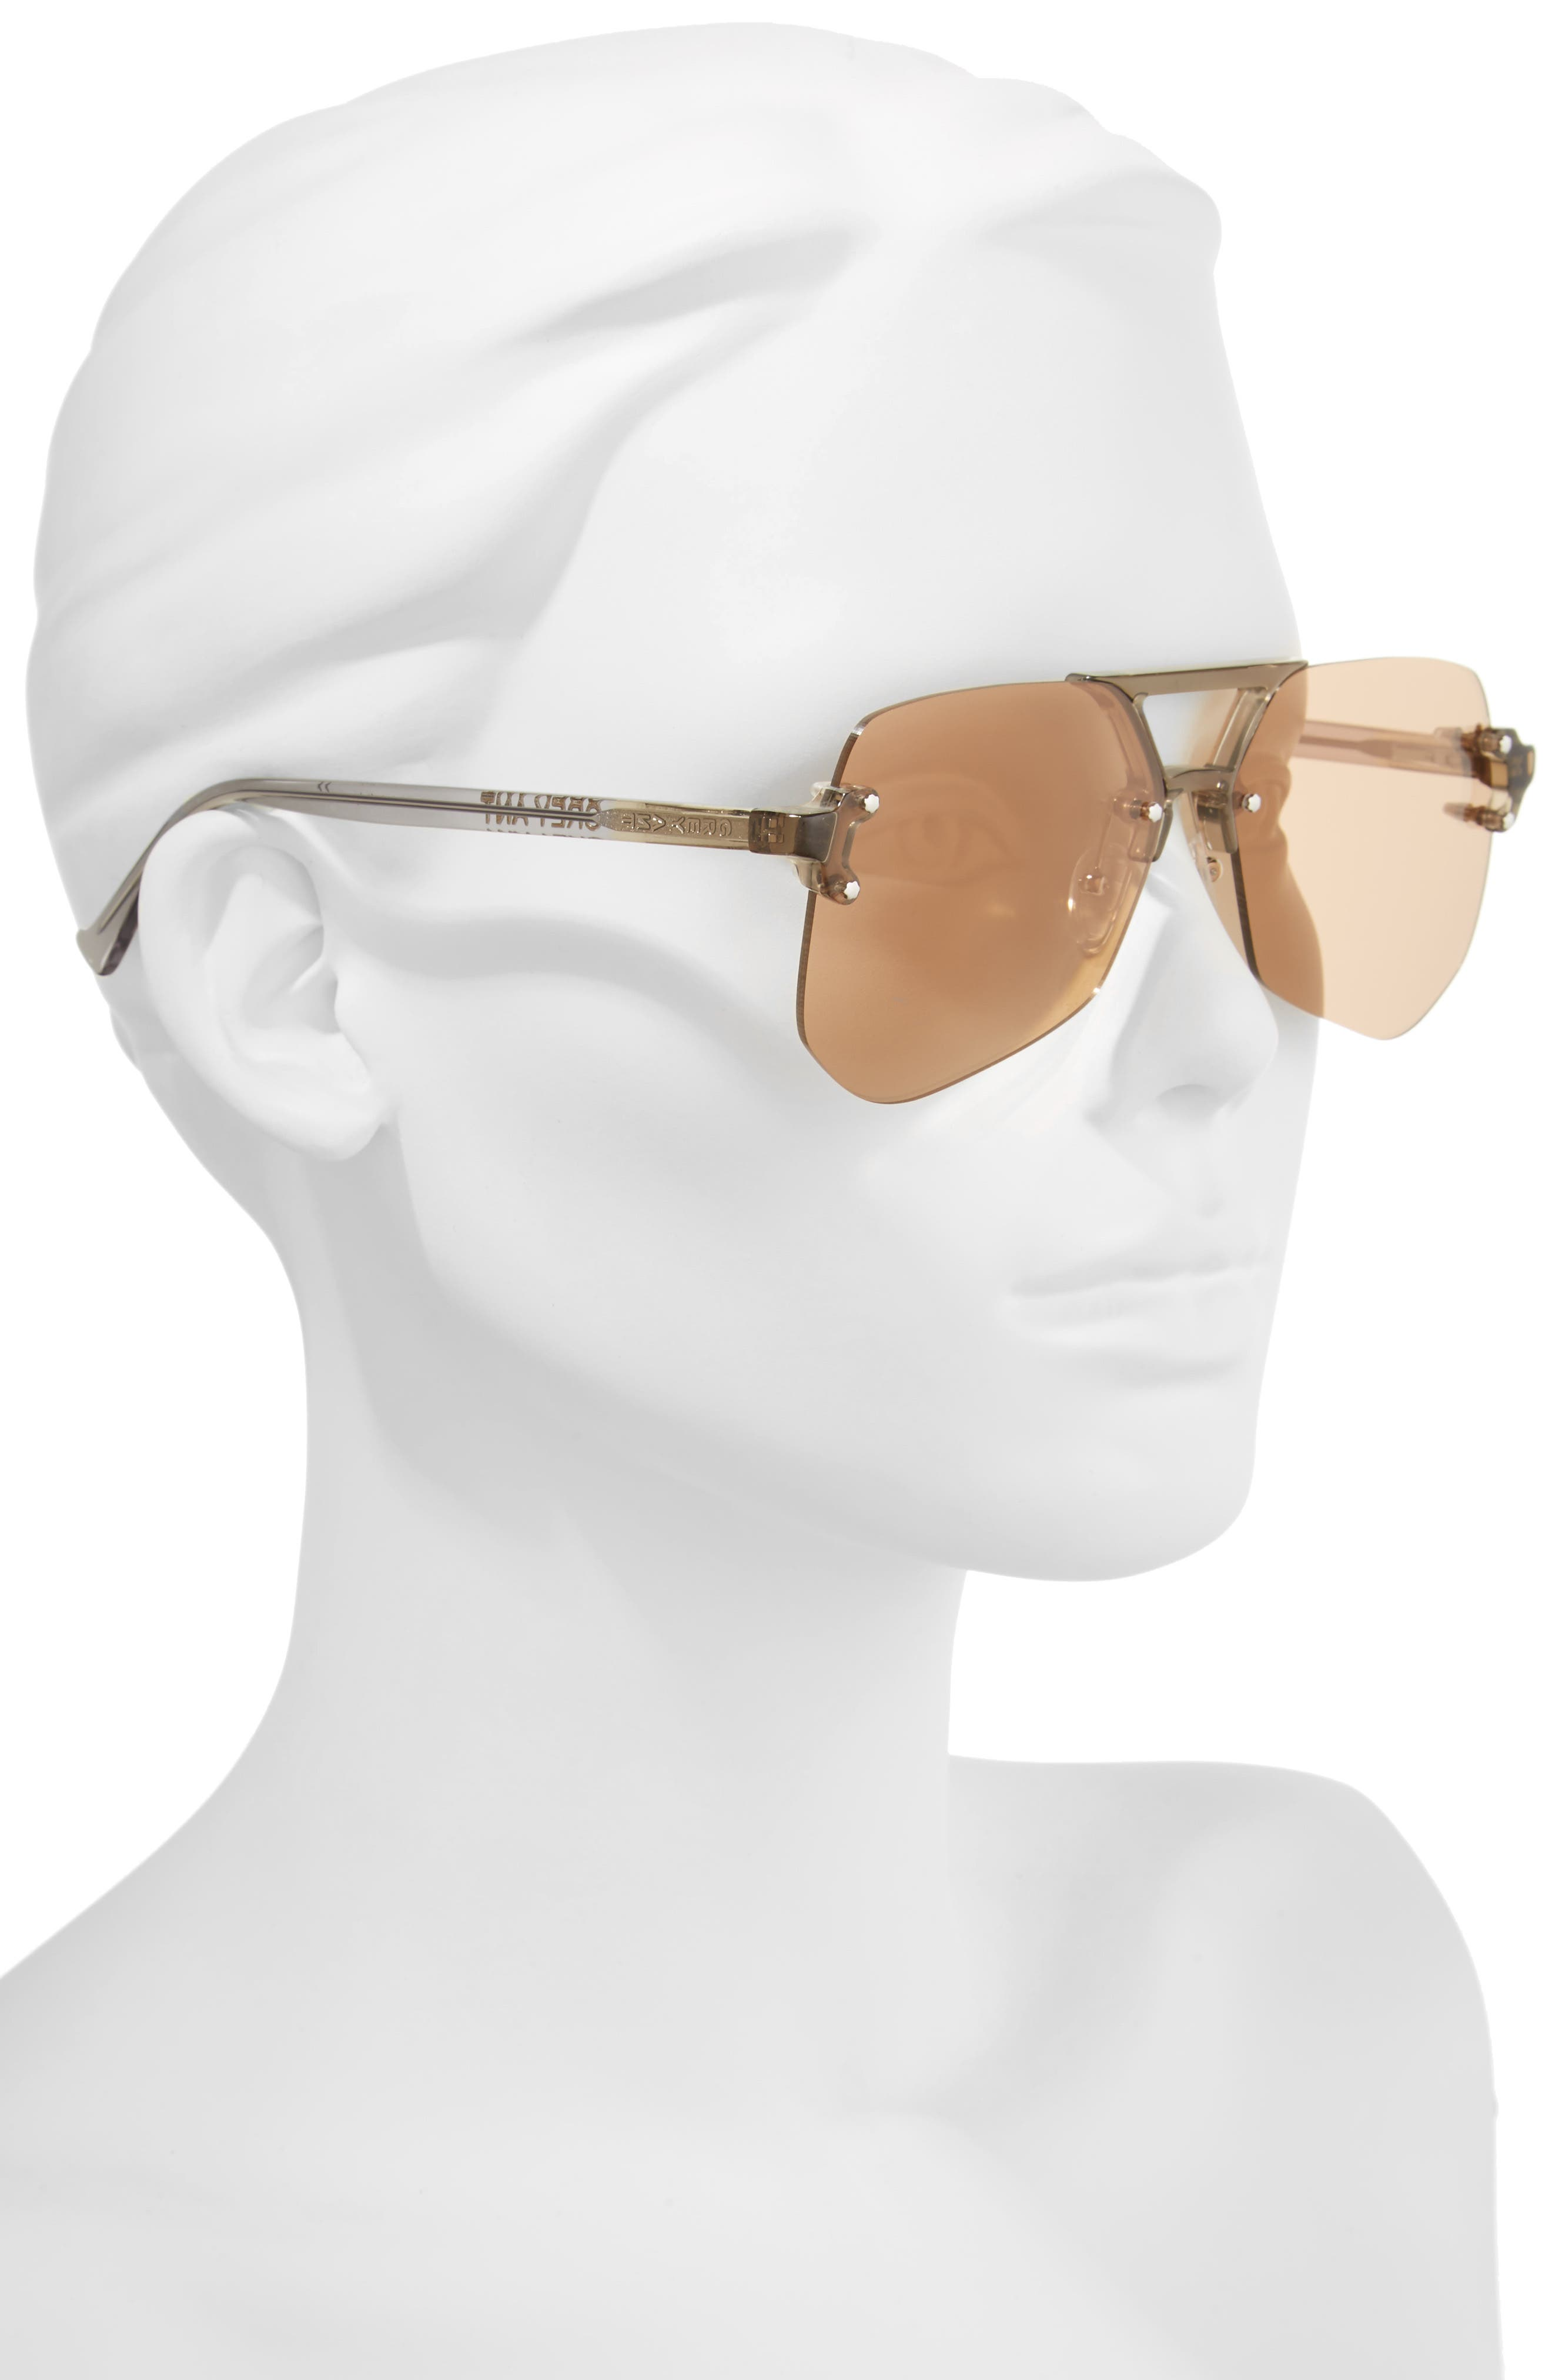 Yesway 60mm Sunglasses,                             Alternate thumbnail 2, color,                             BROWN LENS/ SILVER HARDWARE